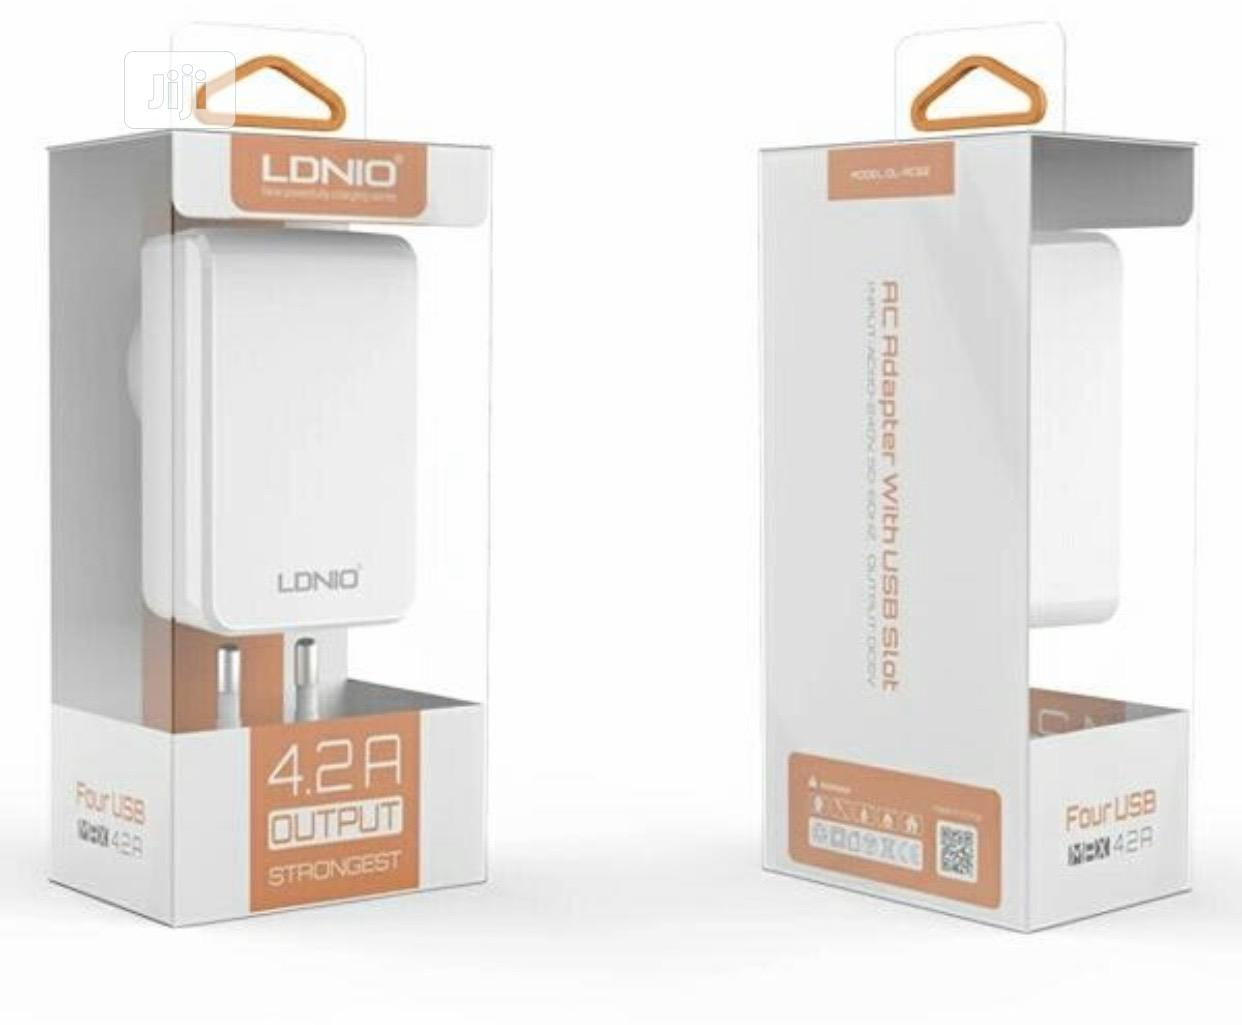 LDNIO 4 USB Outputs 4.2A Wall Charger | Accessories & Supplies for Electronics for sale in Ikeja, Lagos State, Nigeria